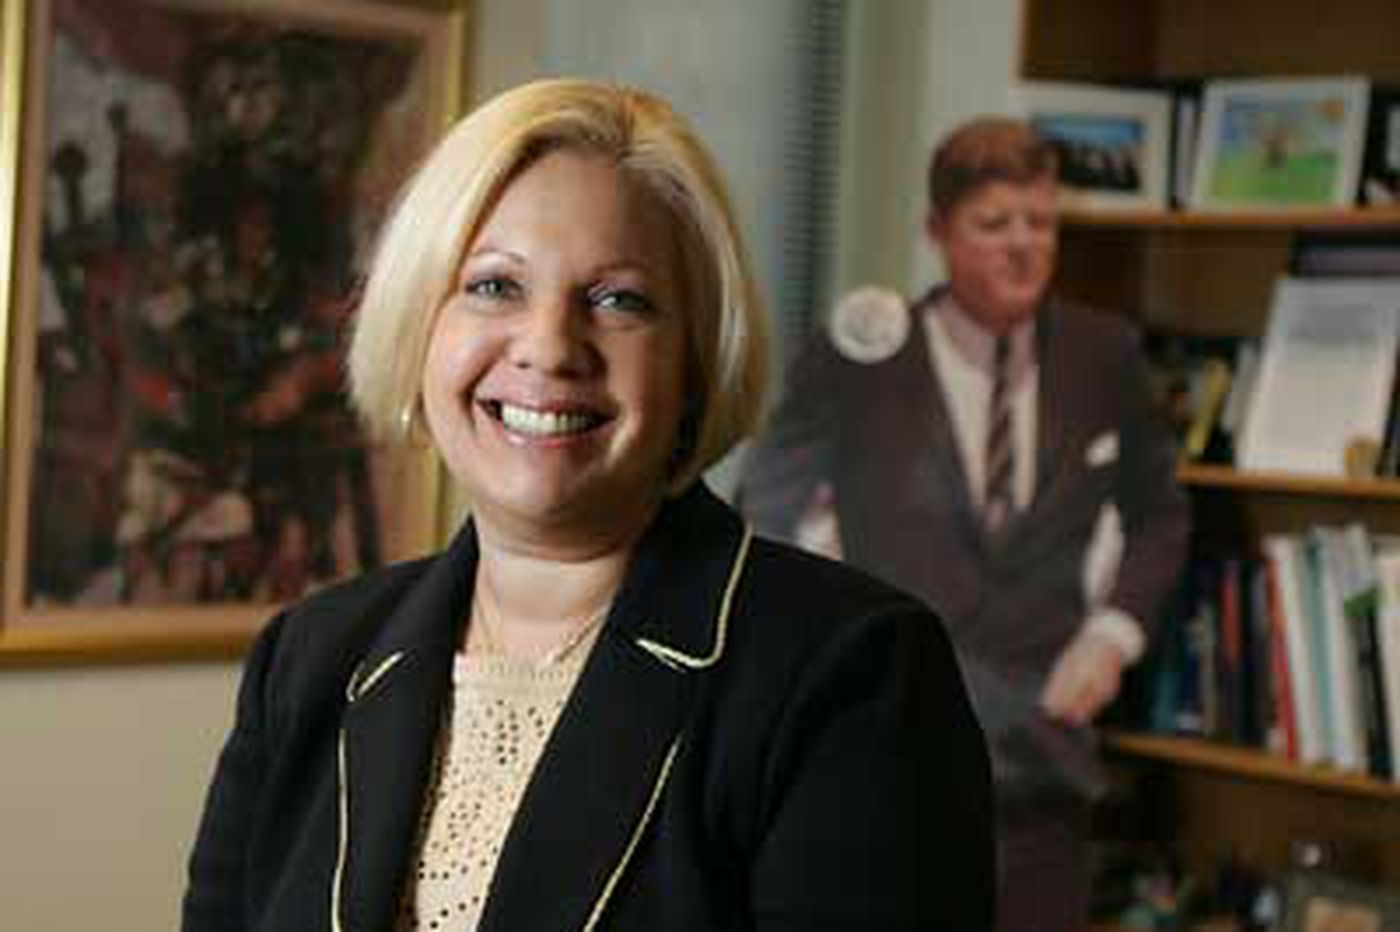 New head of the Phila. Bar Association takes questions